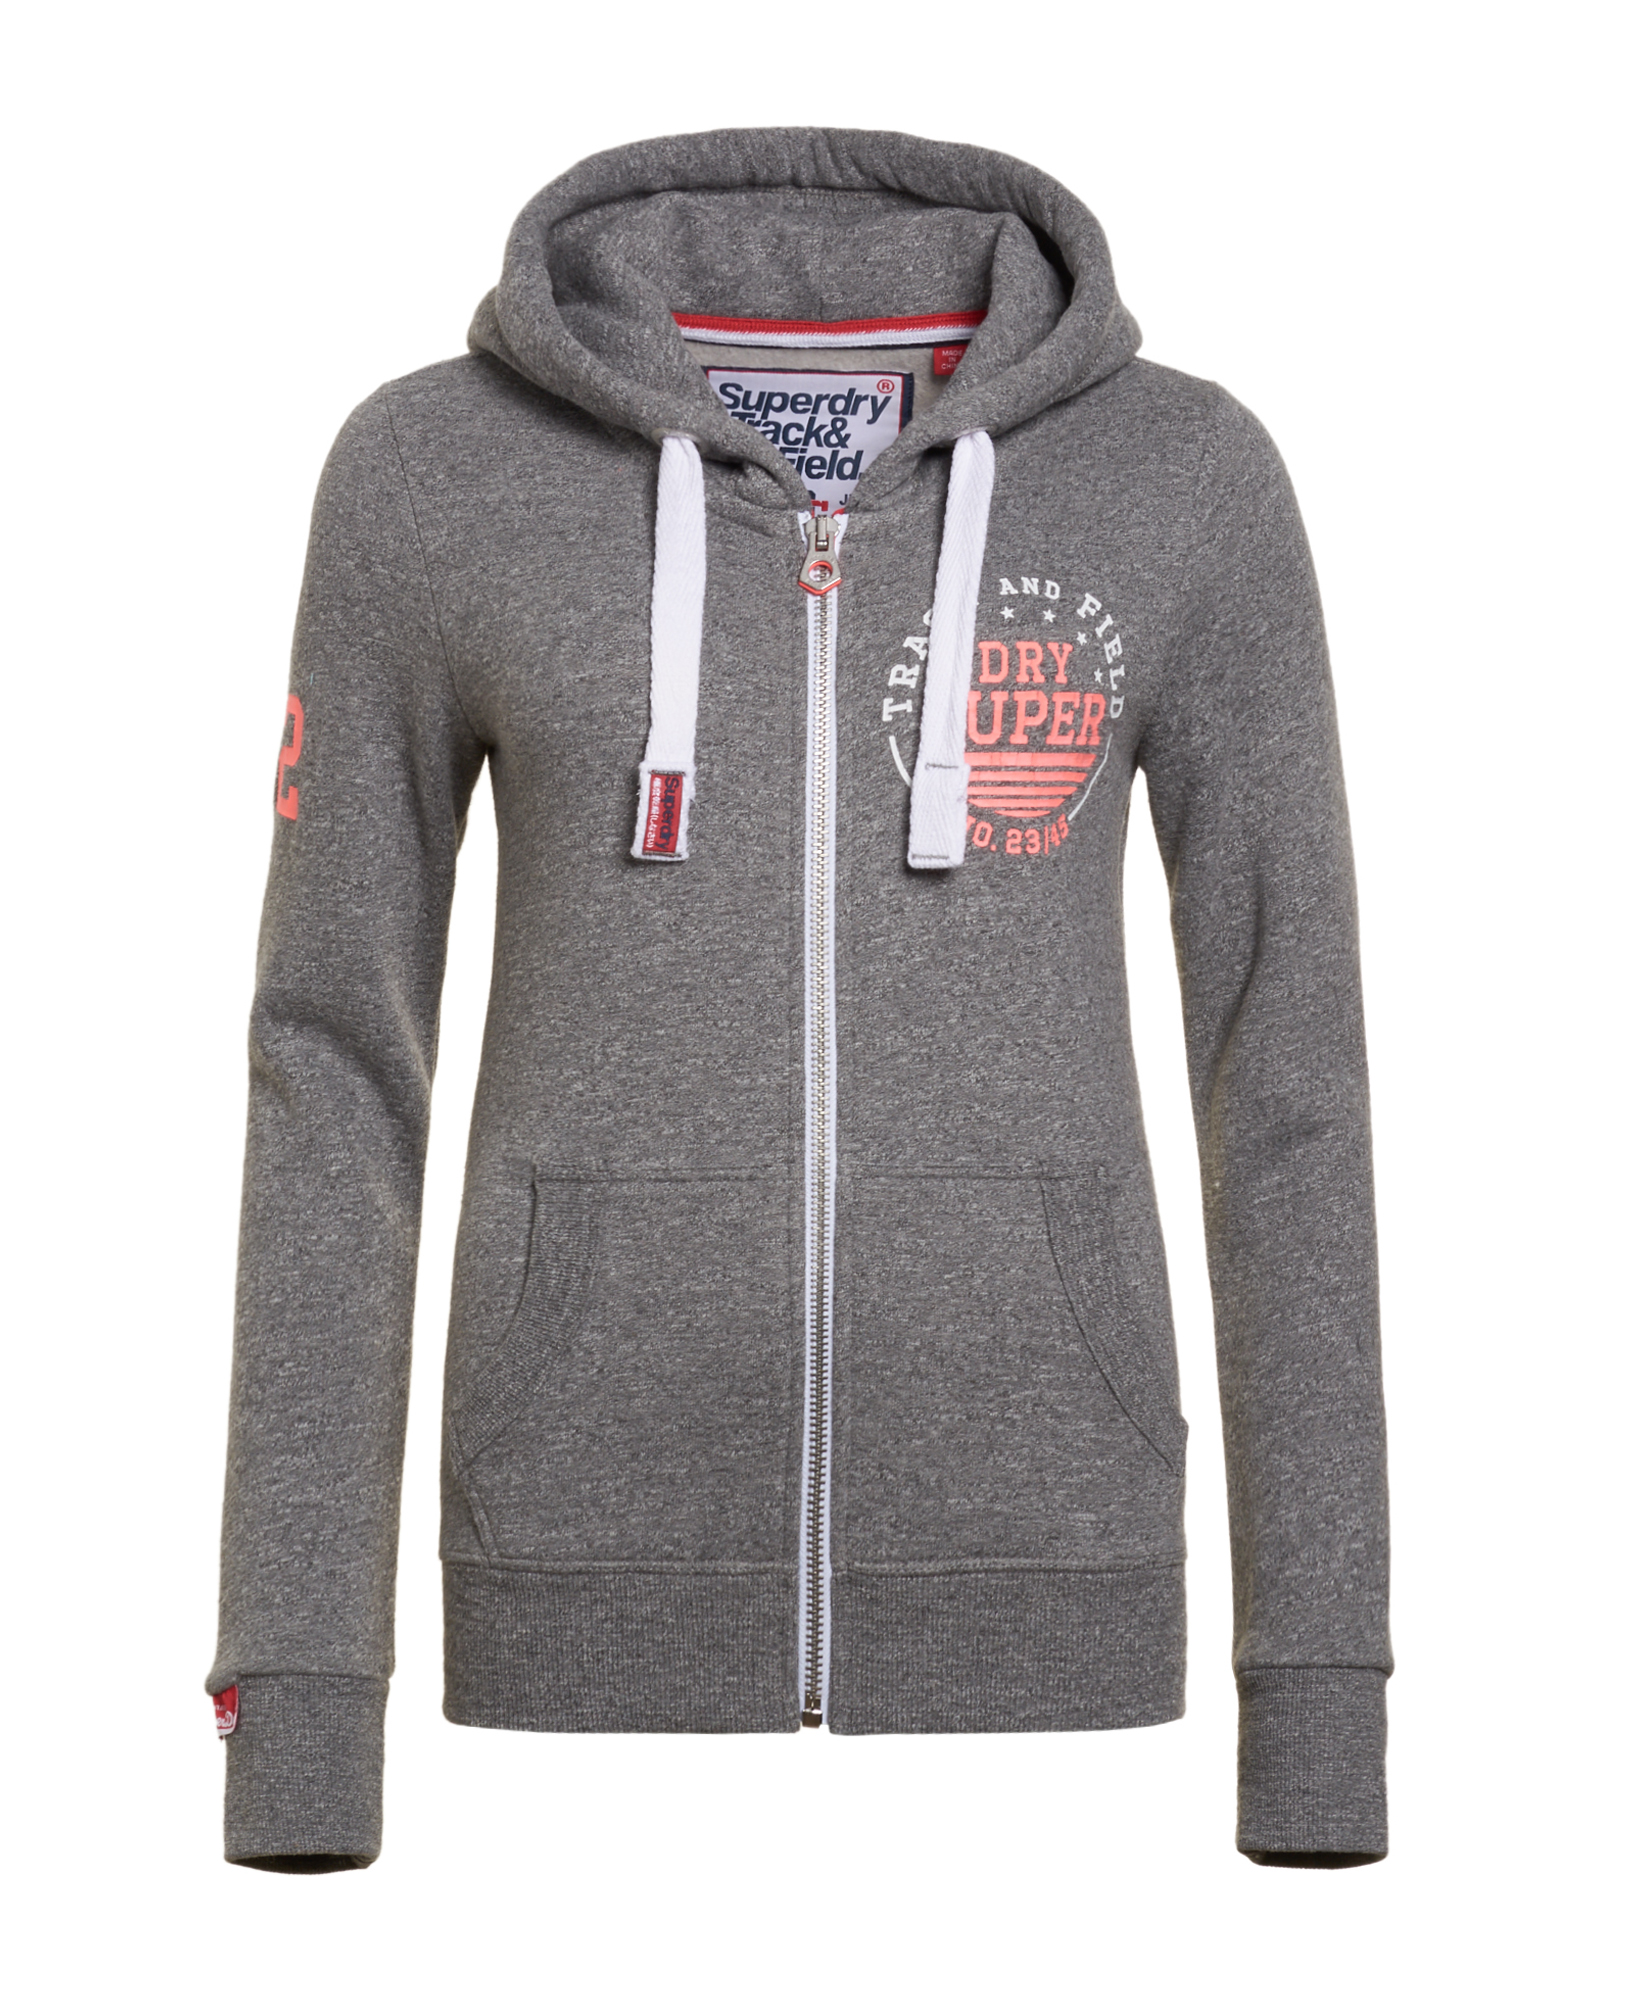 the best attitude b715a 5691e Details about Womens Superdry Track & Field Zip Hoodie Rugged Grey